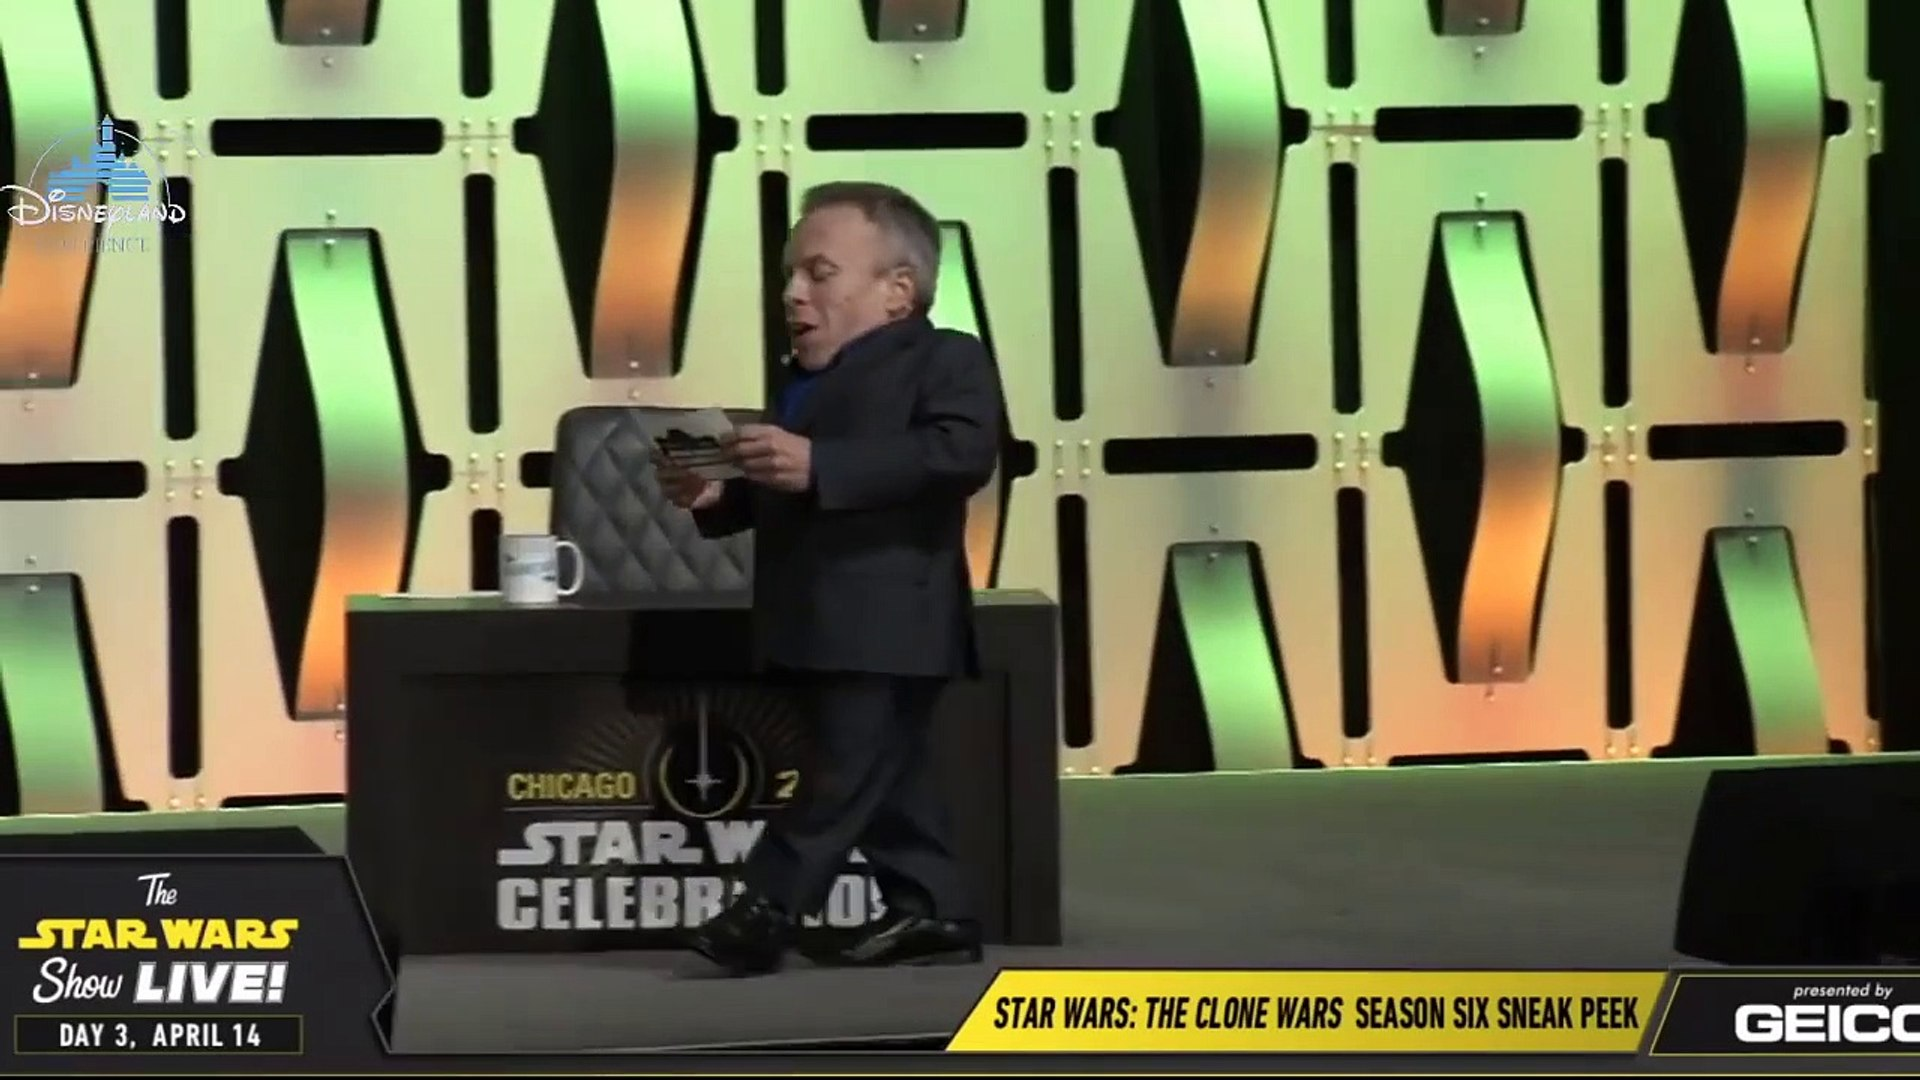 Star Wars The Clone Wars Season 6 Sneak Peek Panel FULL Star Wars Celebration 2019 Chicago Part 1